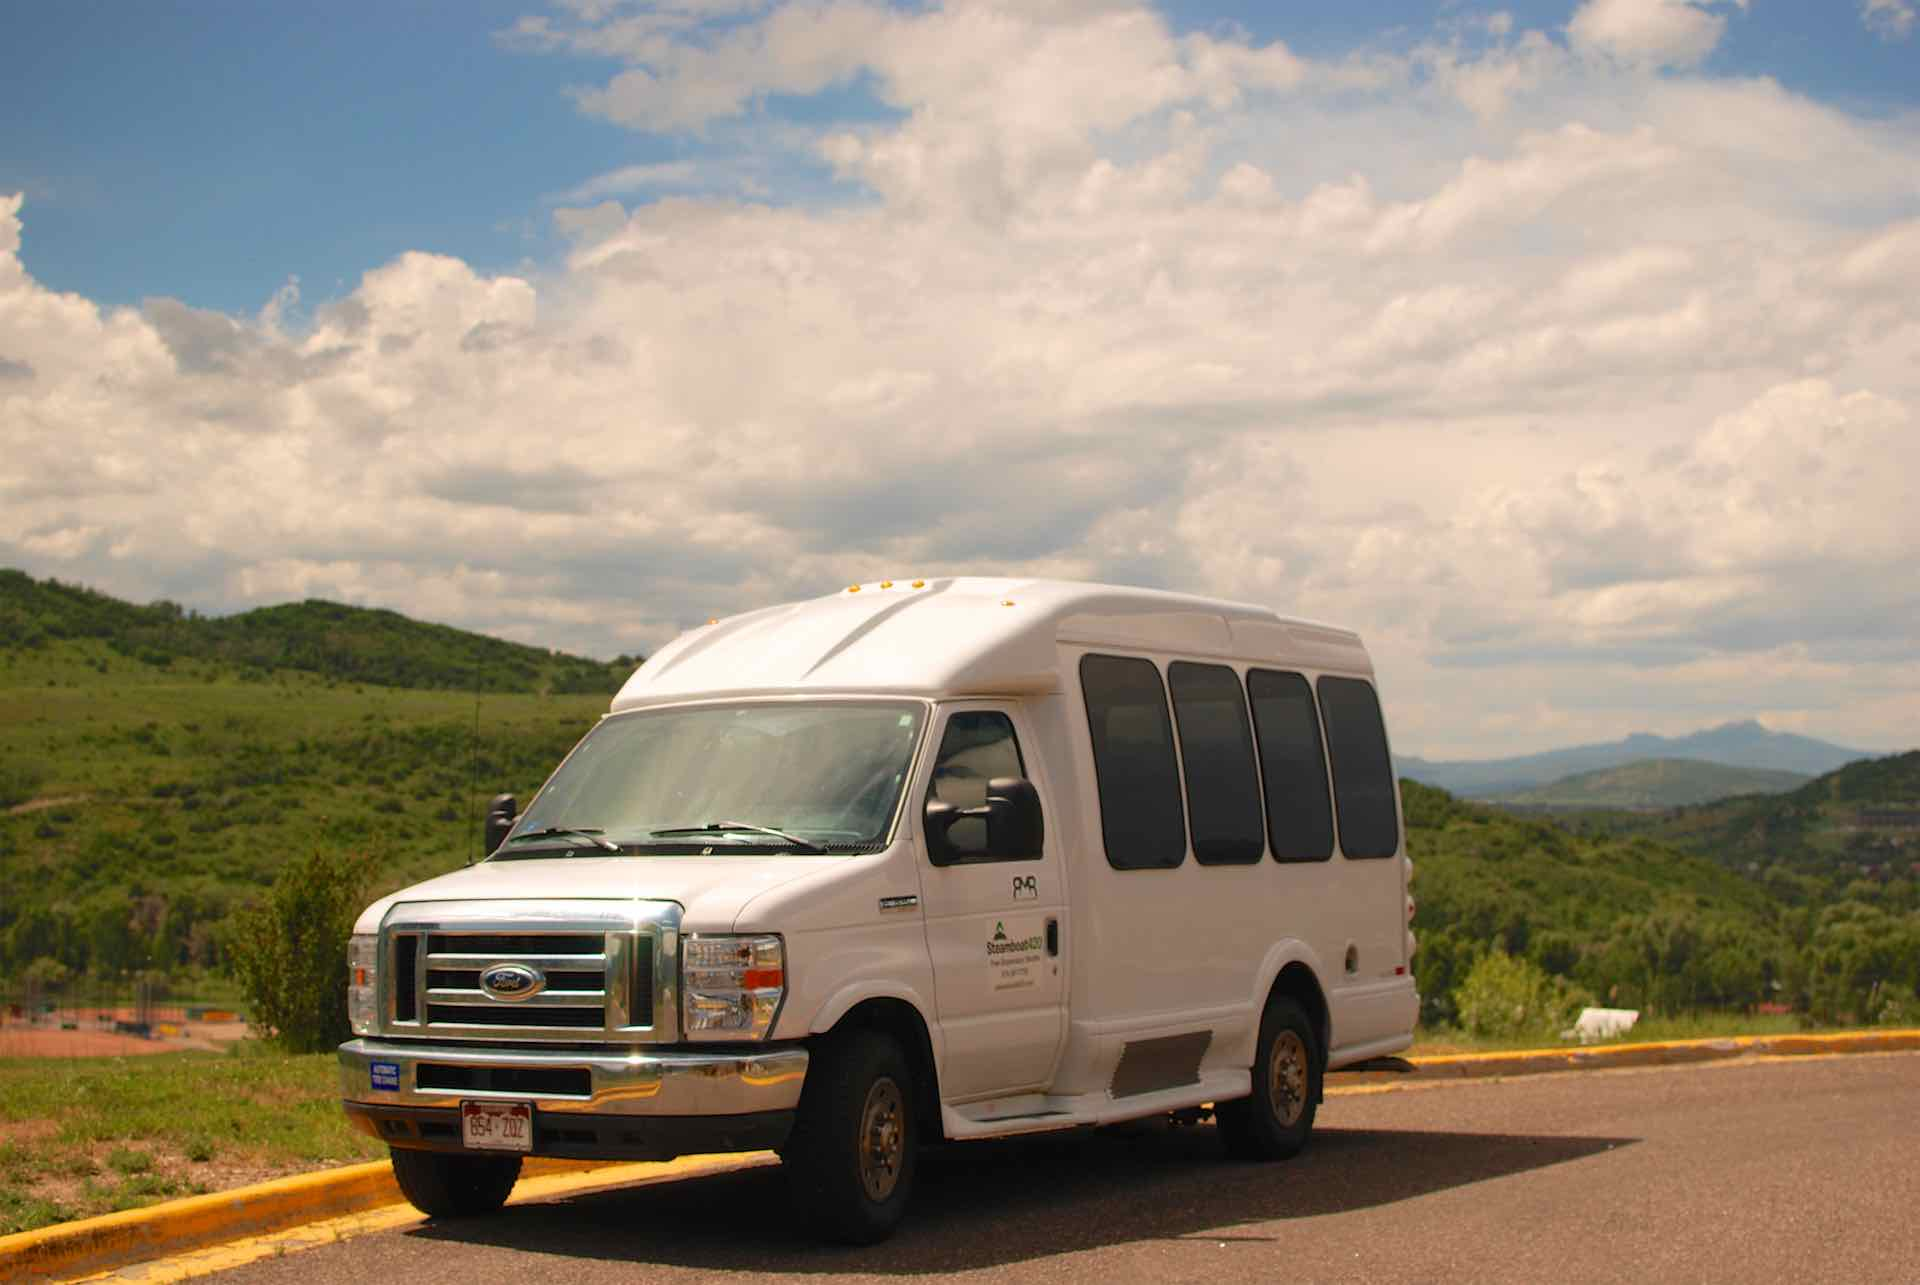 Steamboat Springs Dispensary Shuttle